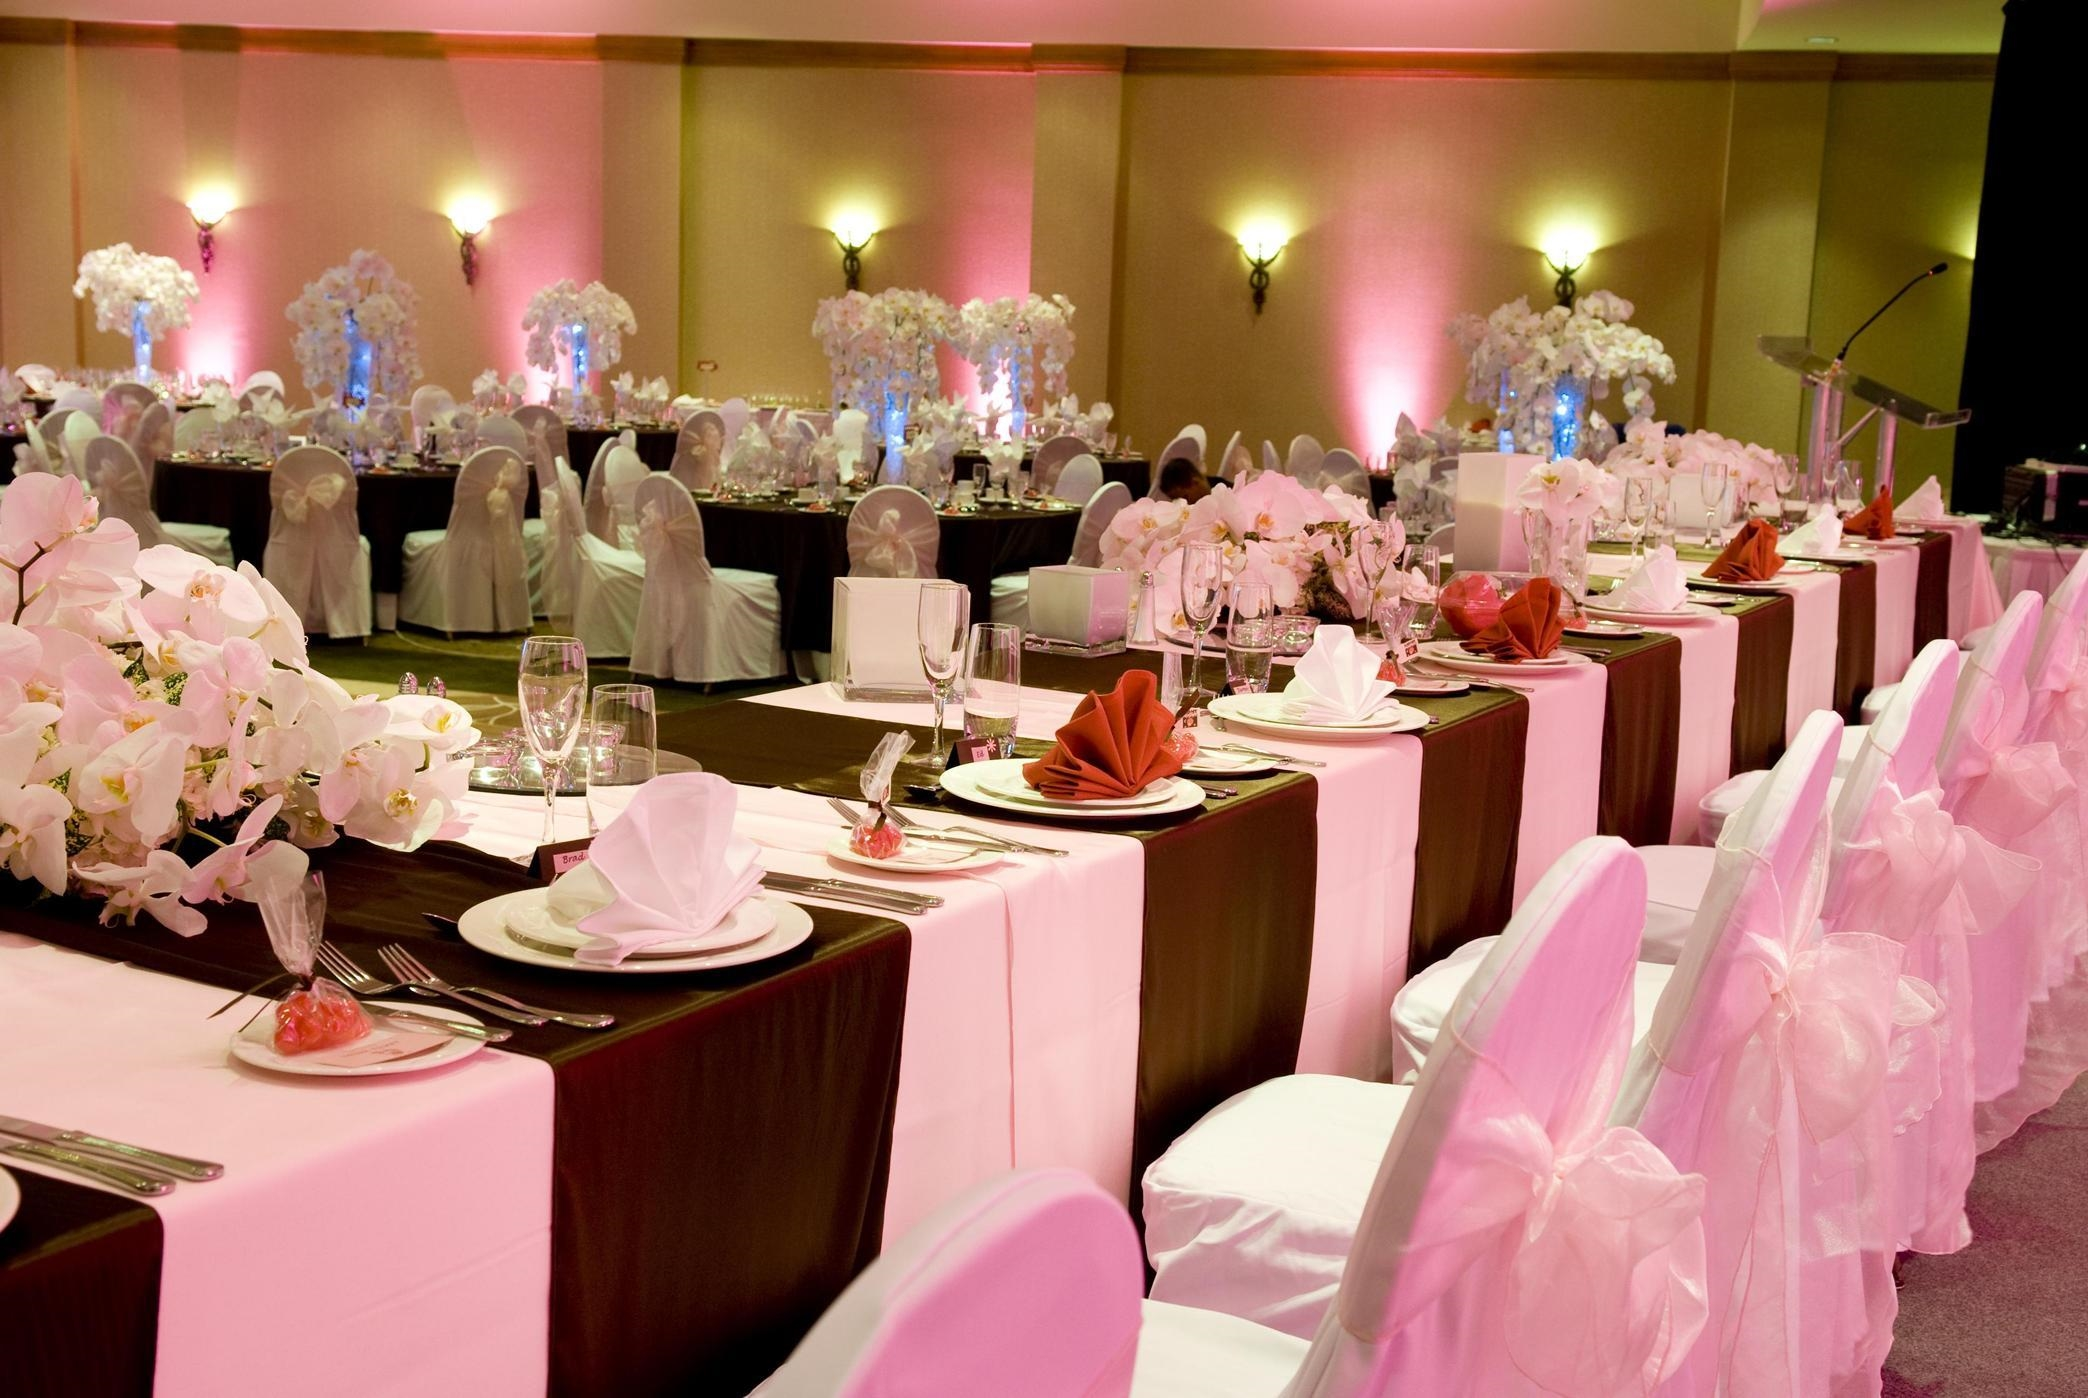 Hilton Vancouver Metrotown in Burnaby: Wedding Party Table